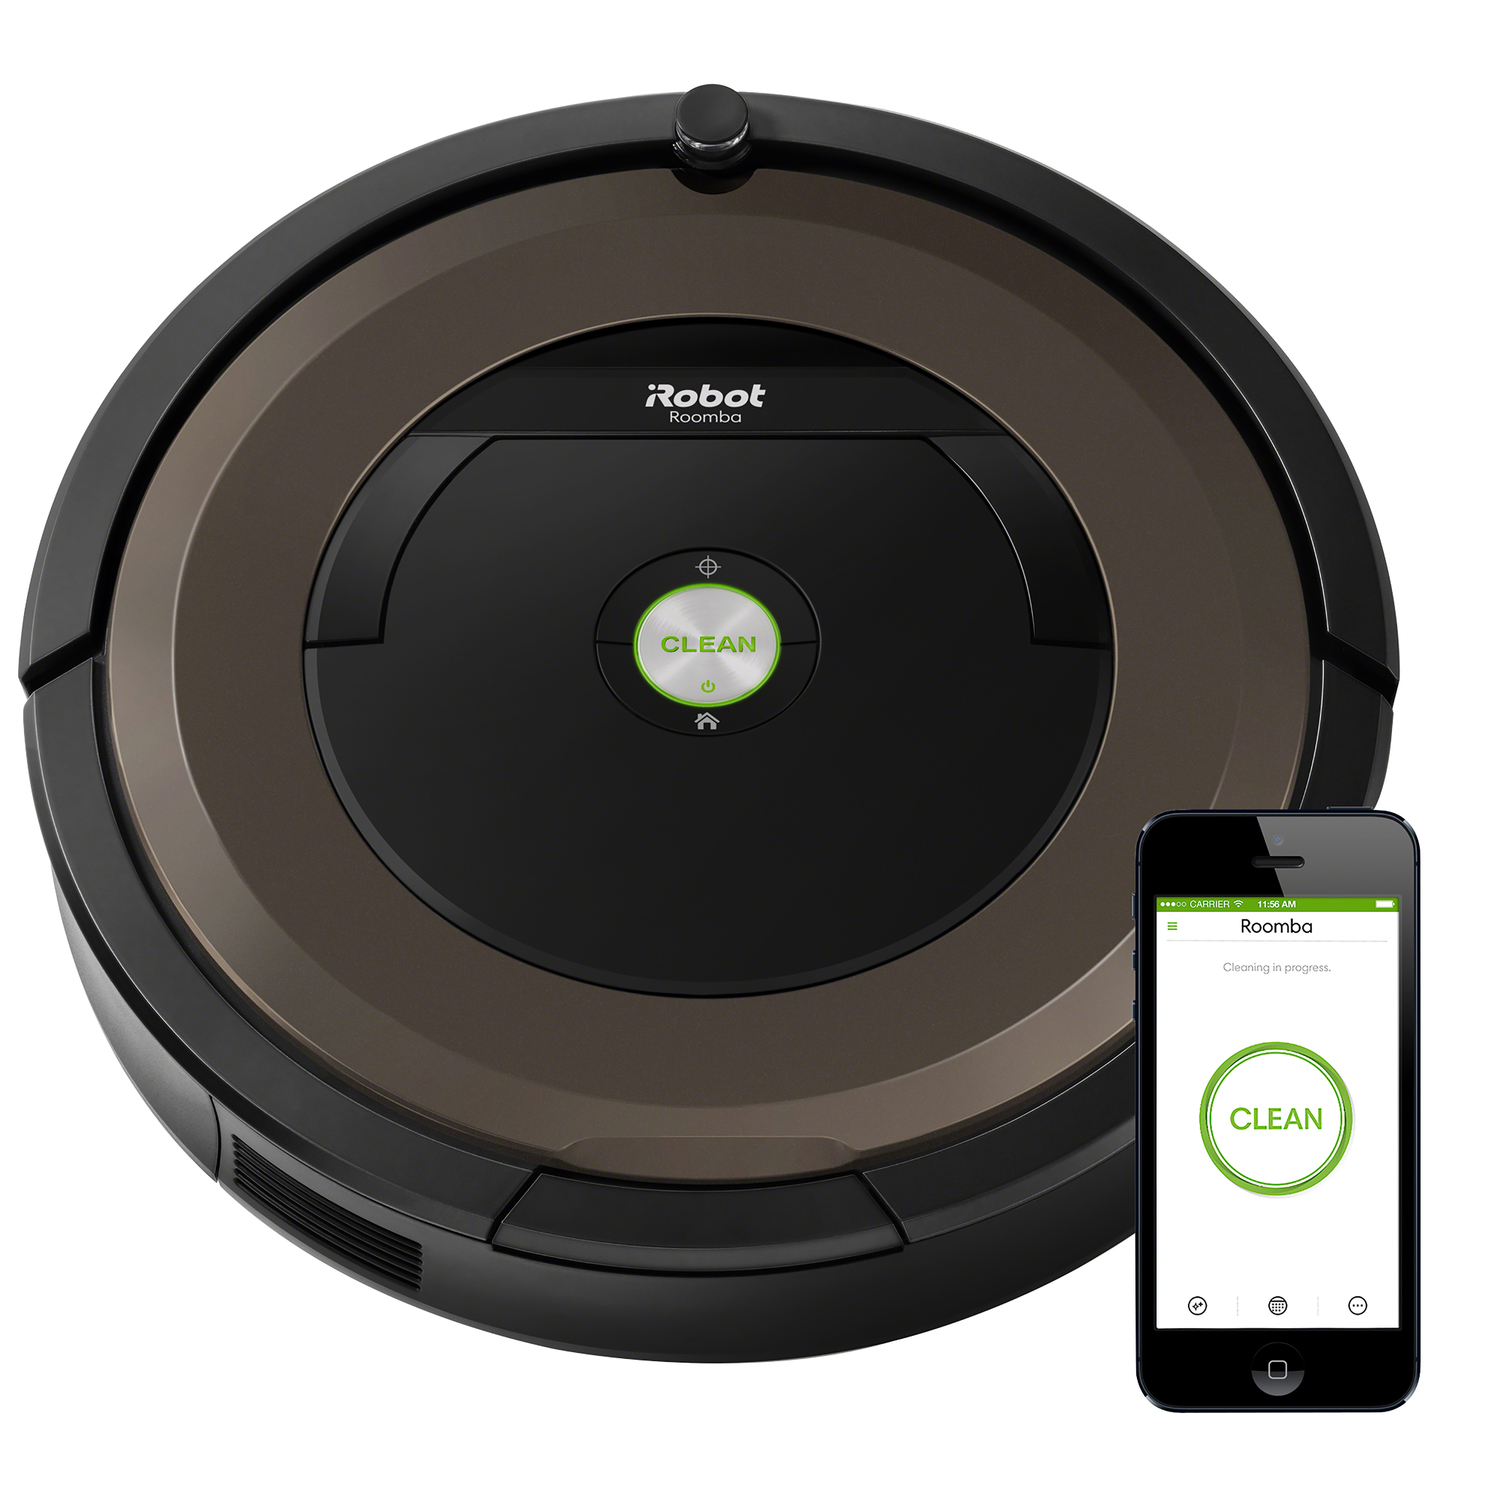 The Roomba 890 Vacuuming Robot loosens, lifts, and suctions dirt with up to 5x more air power. Dirt Detect sensors alert the Roomba robot vacuum to clean more thoroughly on concentrated areas of dirt. Ideal for homes with pets, the Roomba 890 features tangle-free brushes and a high-efficiency filter. Just press CLEAN or schedule Roomba on the go with the iRobot HOME App.